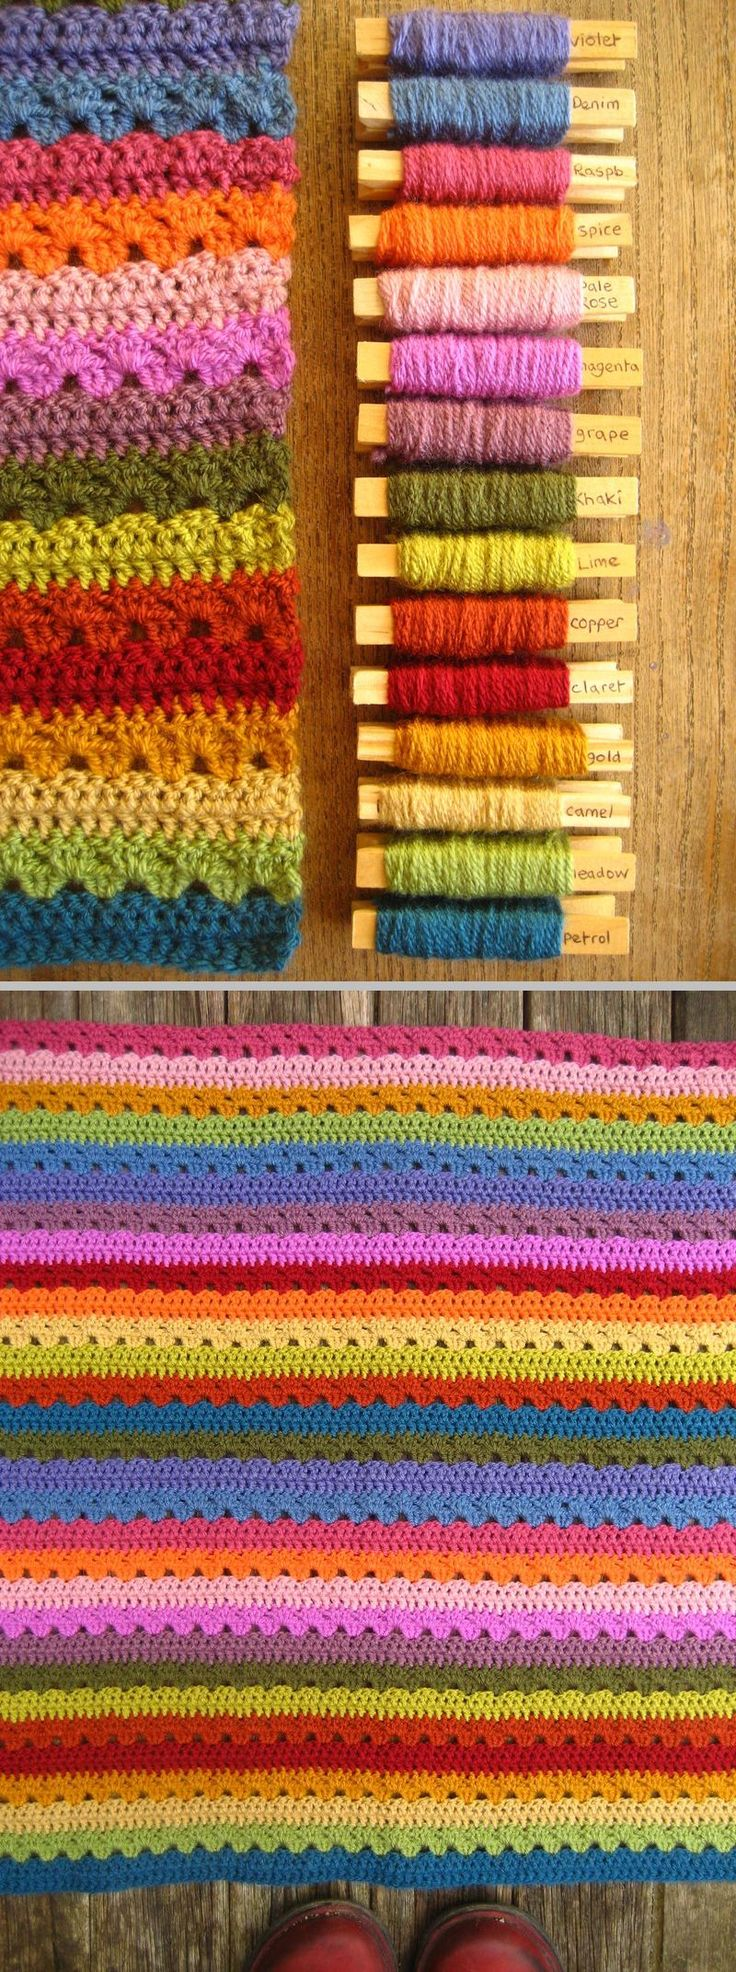 Cosy Stripe Blanket, free pattern by Lucy of Attic24. Very simple, great step-by-step photo tutorial: 2 rows DC alternated with 2 rows granny clusters. 15 colors of Stylecraft Special DK, hook size 'G'. Random order of colors, specified each Sunday on her blog. Lucy is also having a CAL for this blanket from Nov. '14 thru Jan. '15 on Ravelry: http://www.ravelry.com/discuss/we-love-lucy/3052380/51-75 ✿⊱╮Teresa Restegui http://www.pinterest.com/teretegui/✿⊱╮